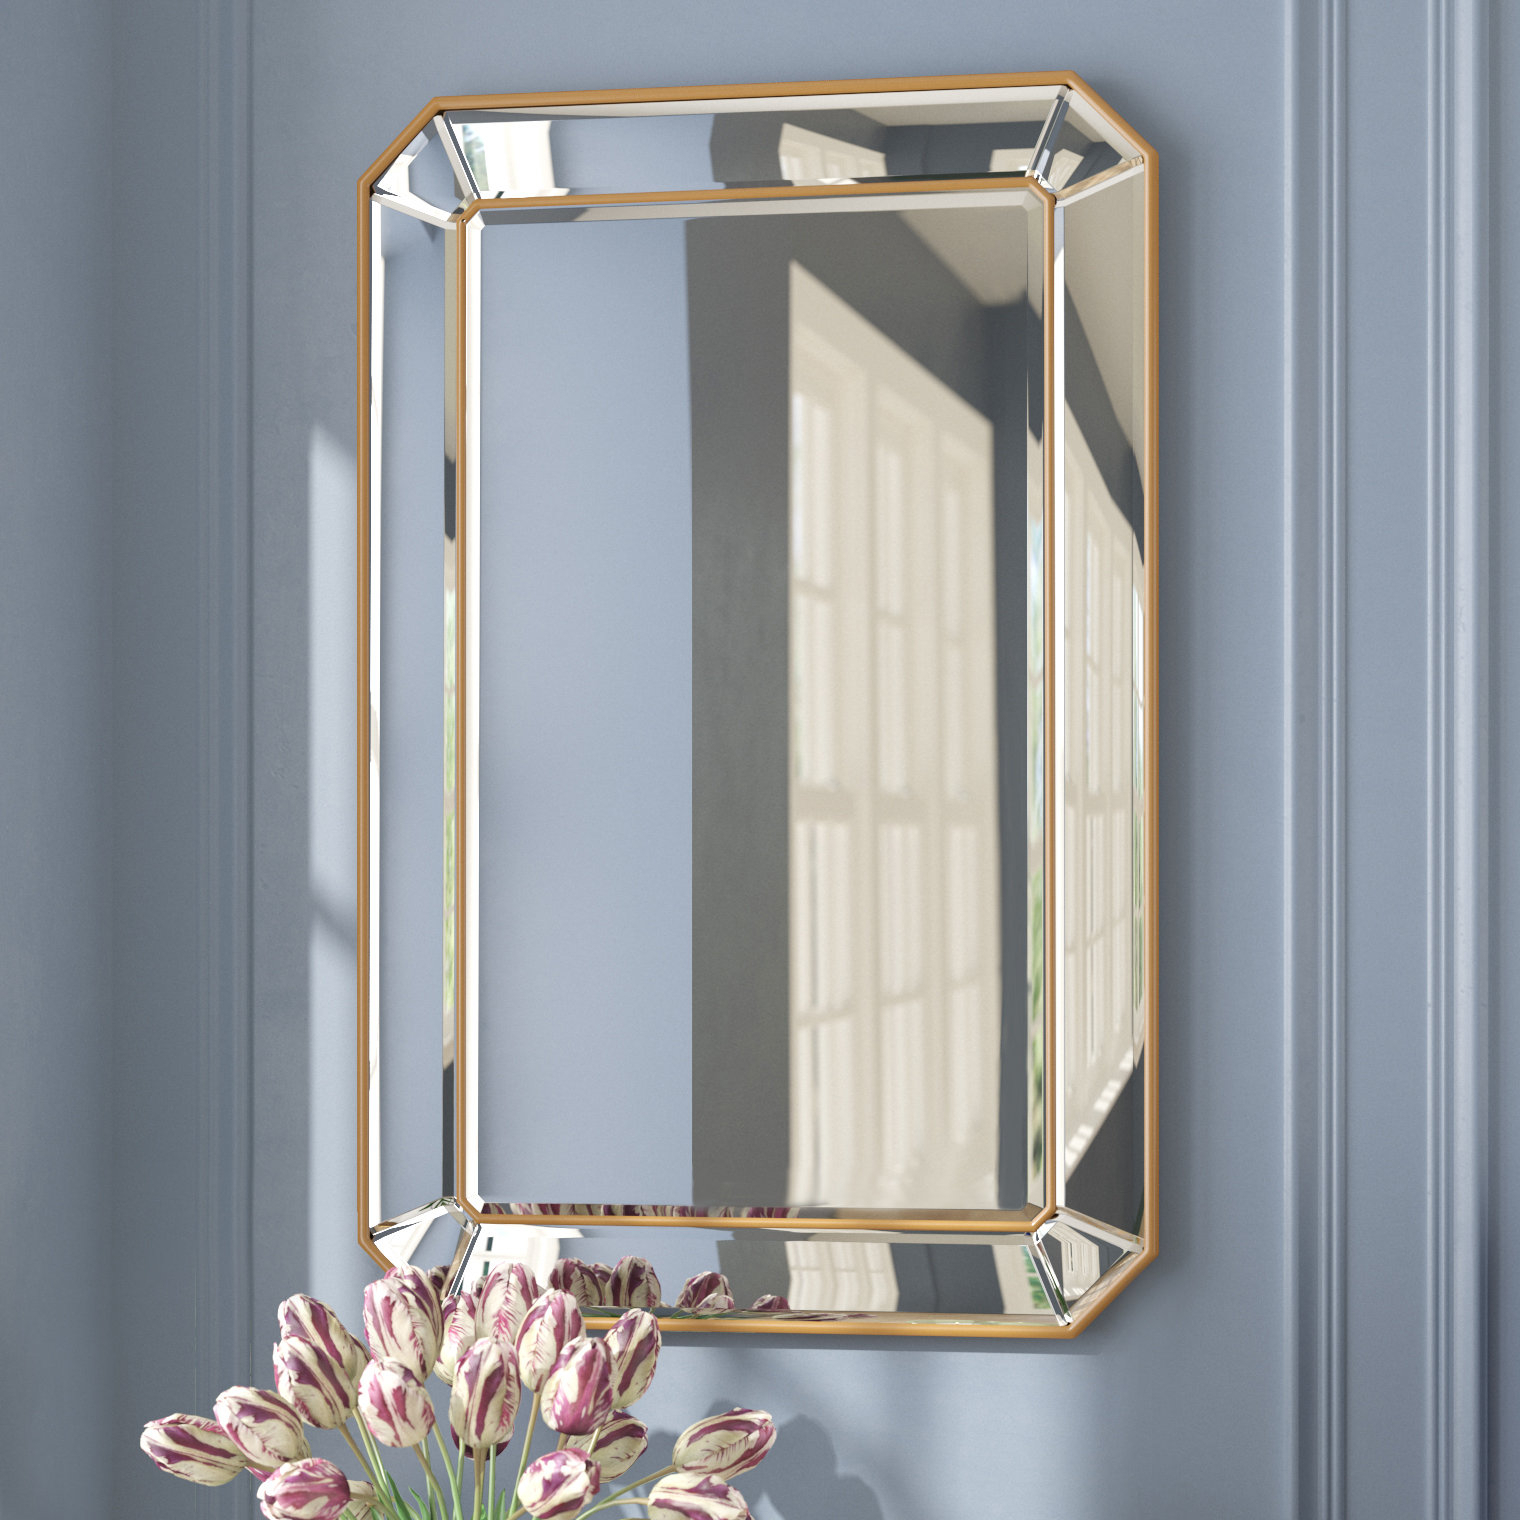 Broadmeadow Accent Wall Mirror | Wayfair With Hussain Tile Accent Wall Mirrors (Image 8 of 20)